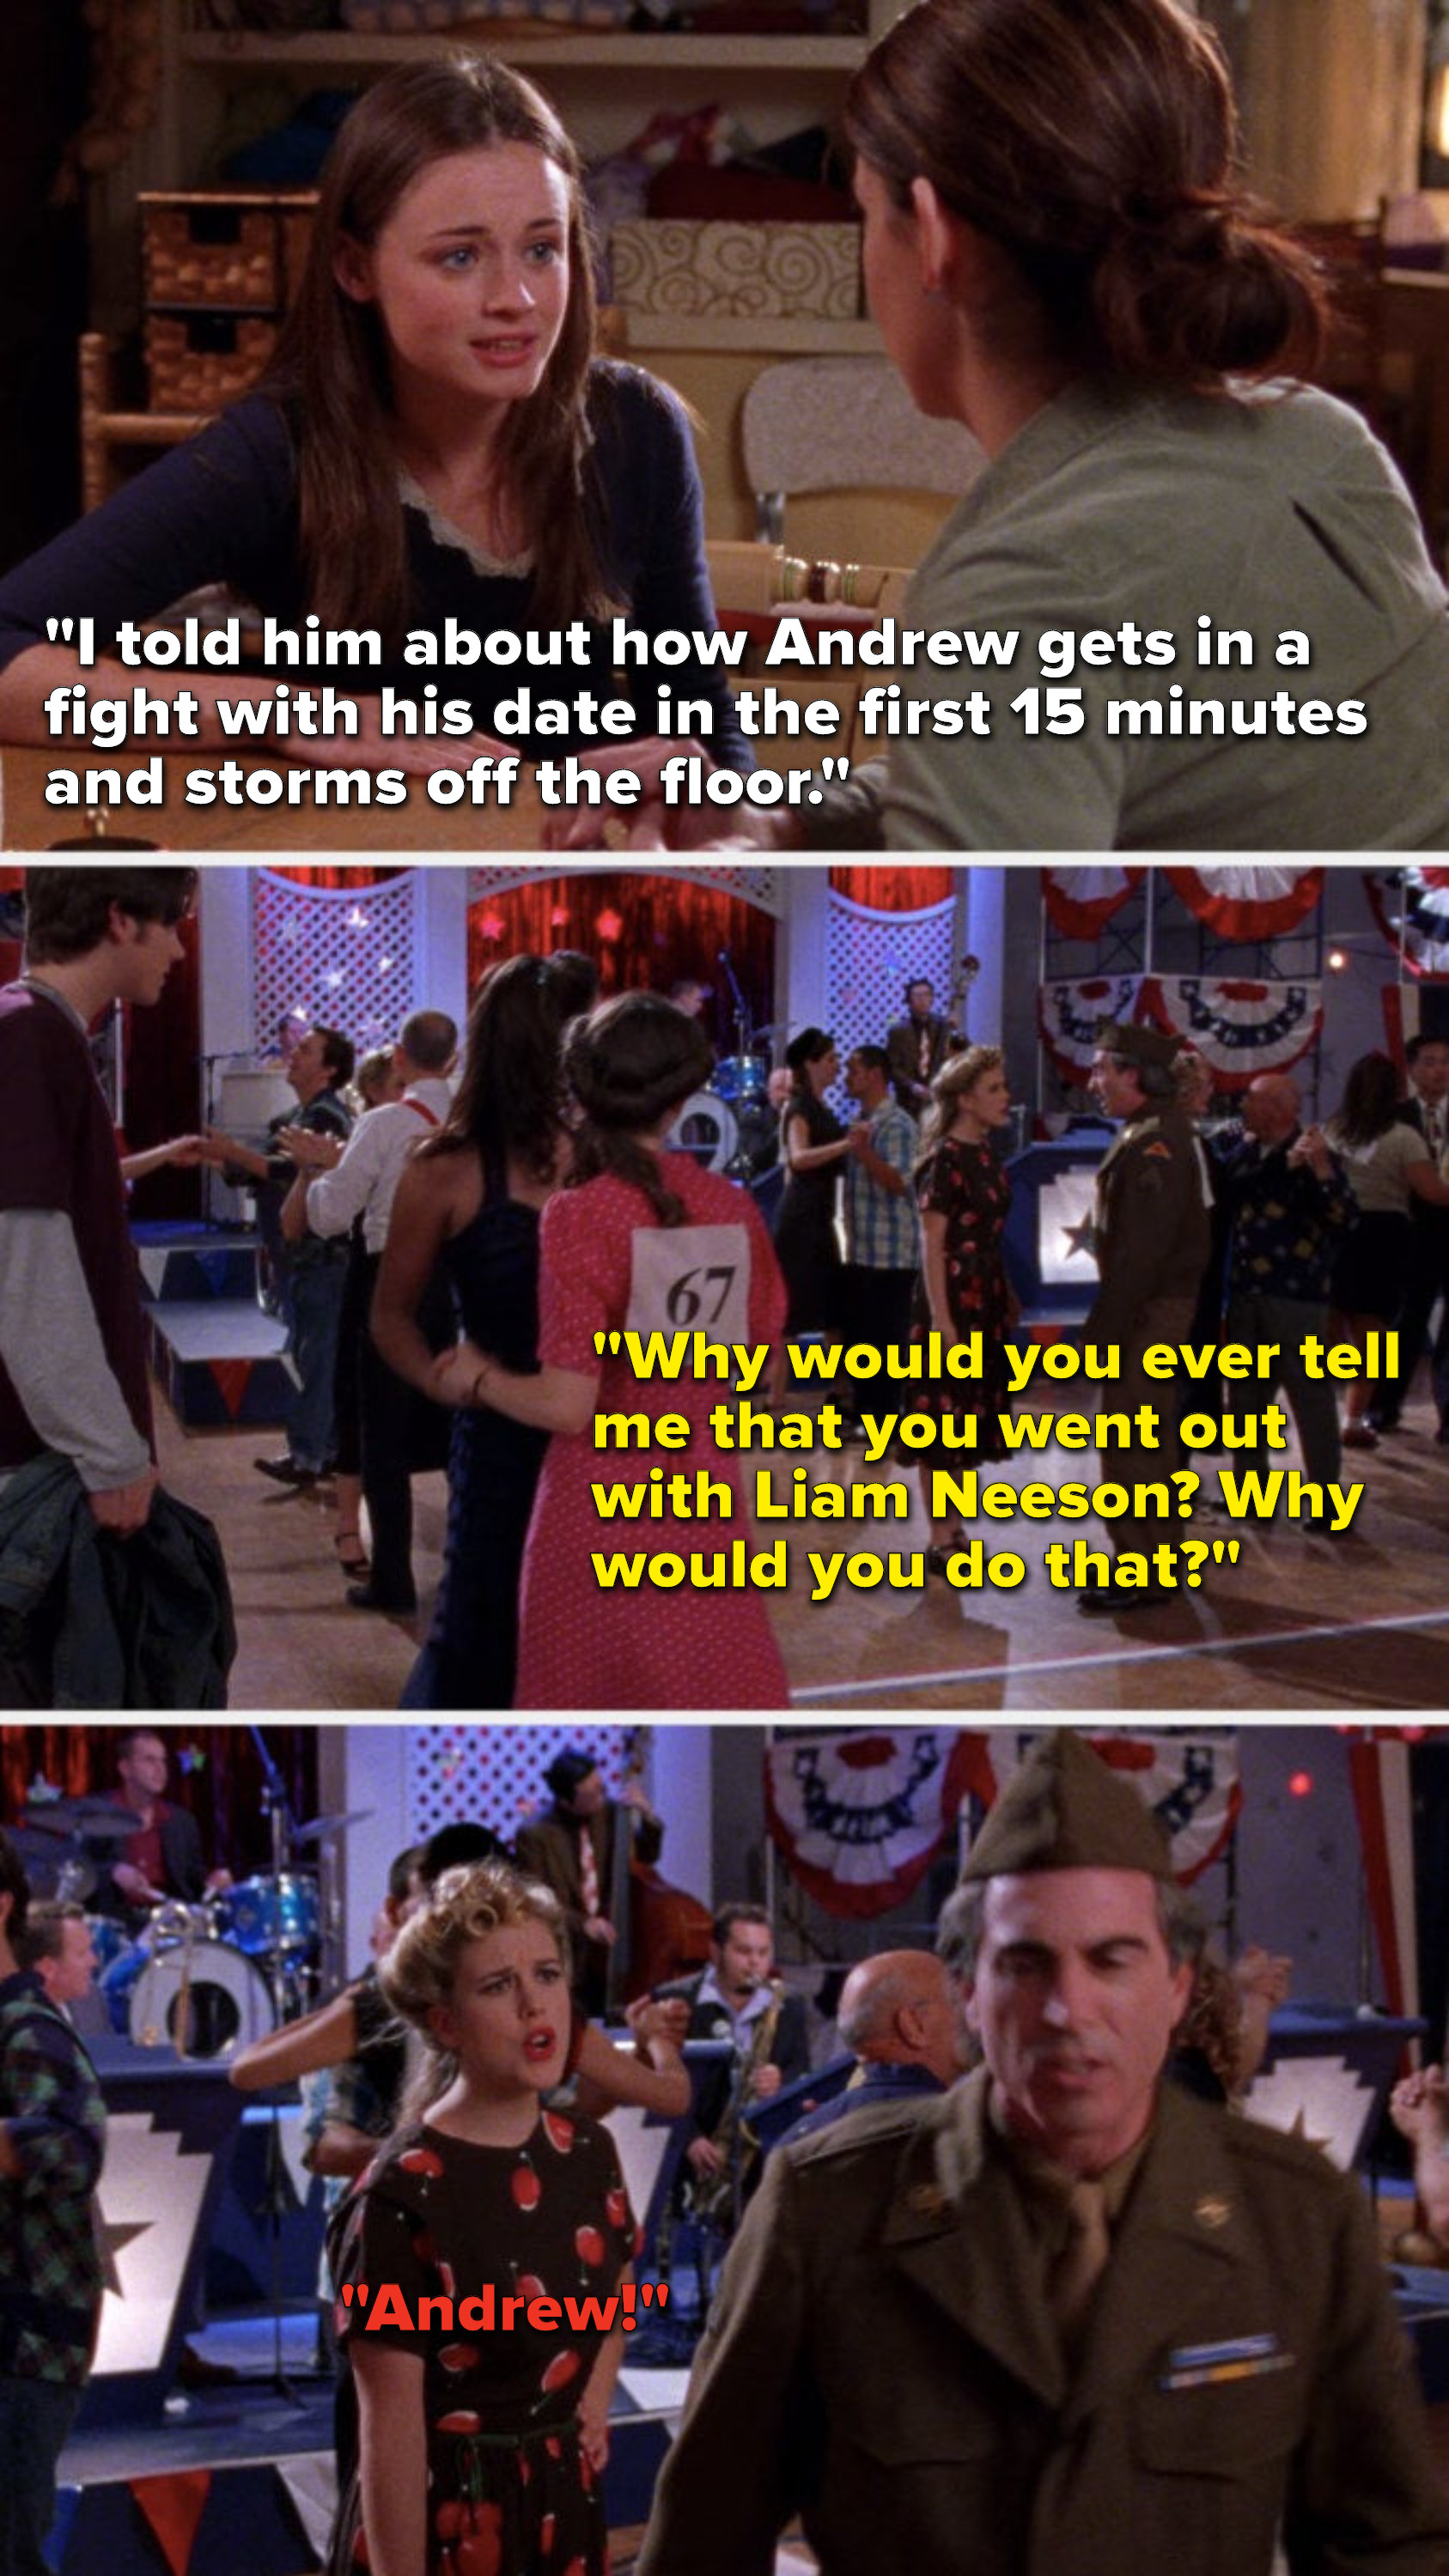 """Earlier Rory says, """"I told him Andrew gets in a fight with his date in the first 15 minutes and storms off the floor,"""" and at the dance, Andrew says to his date, """"Why would you ever tell me that you went out with Liam Neeson"""" and he storms off"""